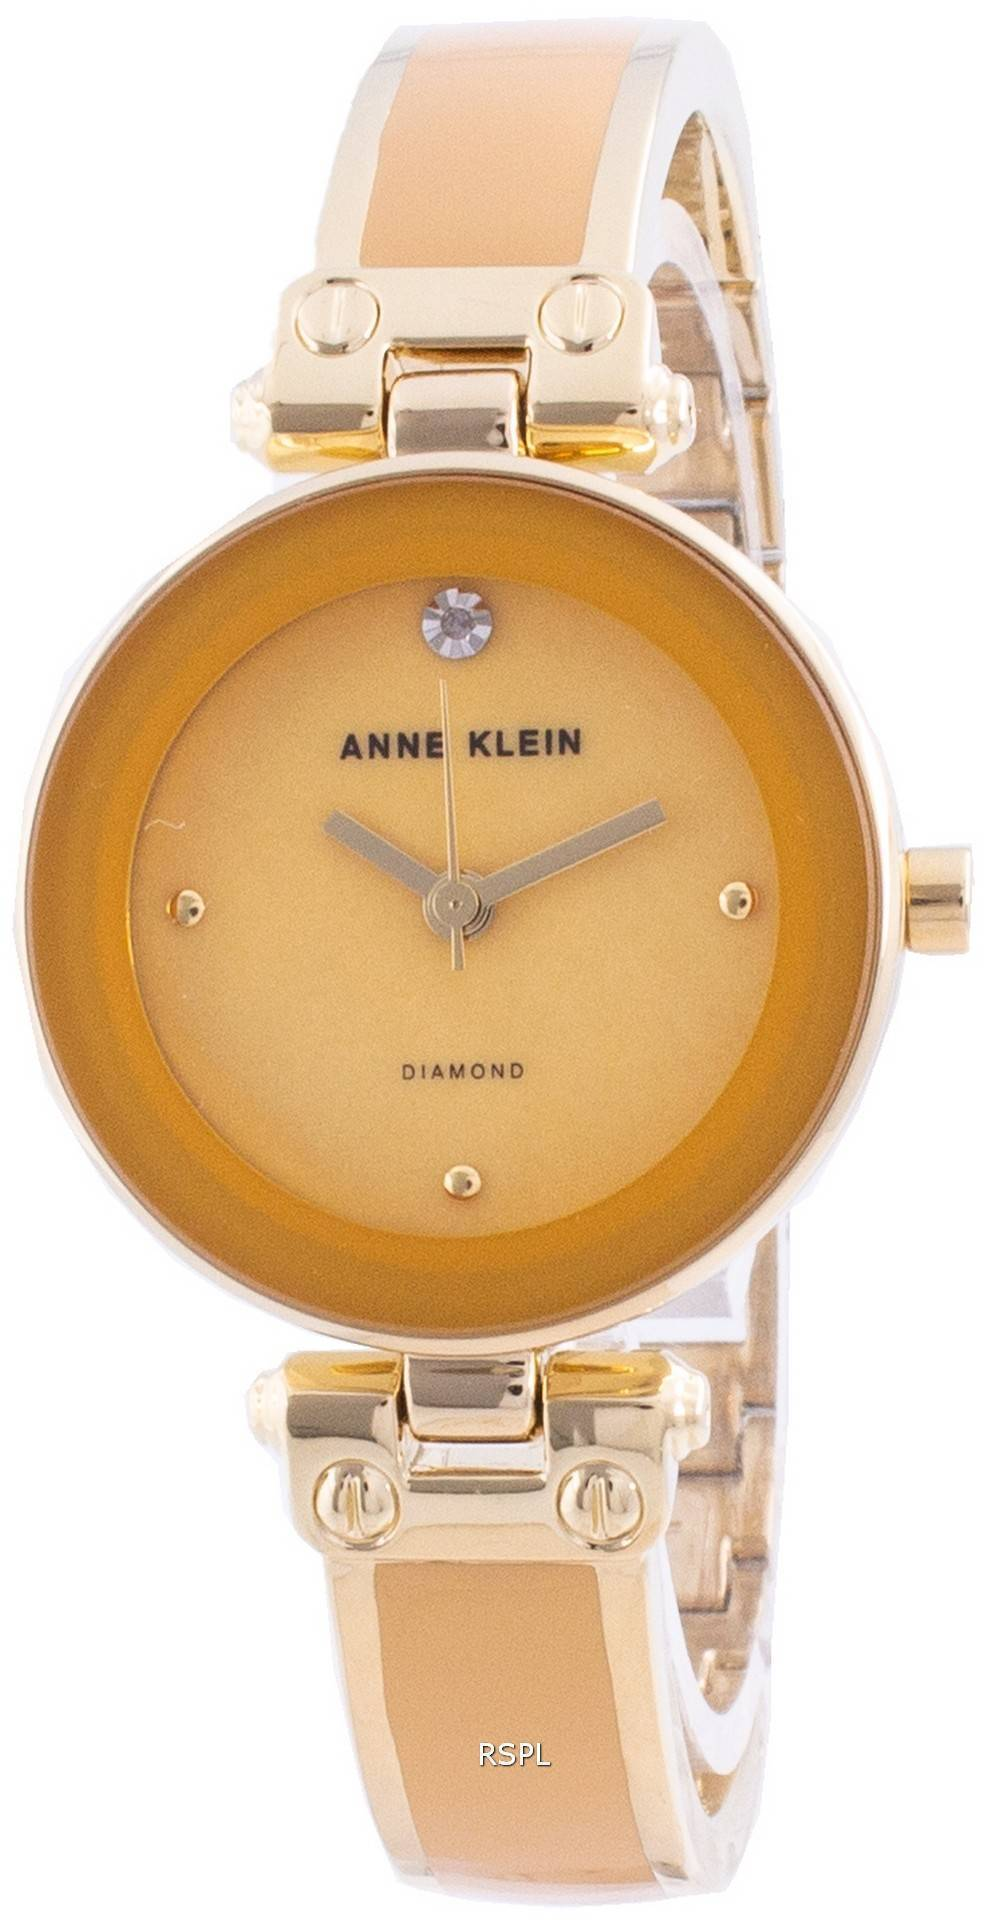 Anne Klein 1980MGGB Quartz Diamond Accents Naistenkello